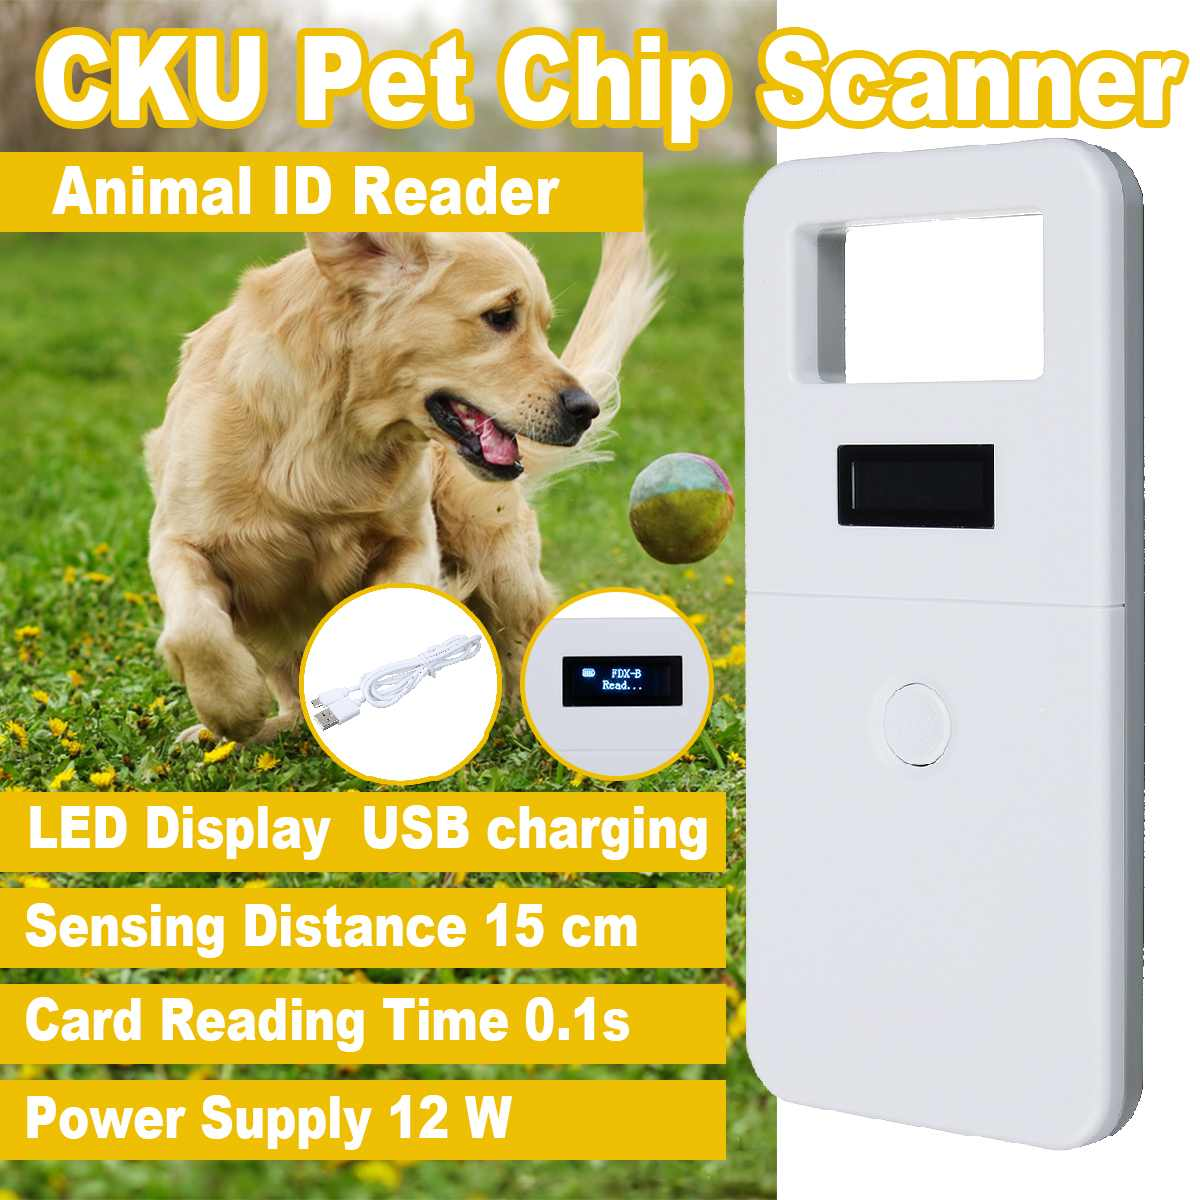 New ISO11784/11785 Pet RFID Chip Reader 134.2KHz FDX-B For Dog Cat LED Display Animal Microchip Scanner Tag Barcode Scanner